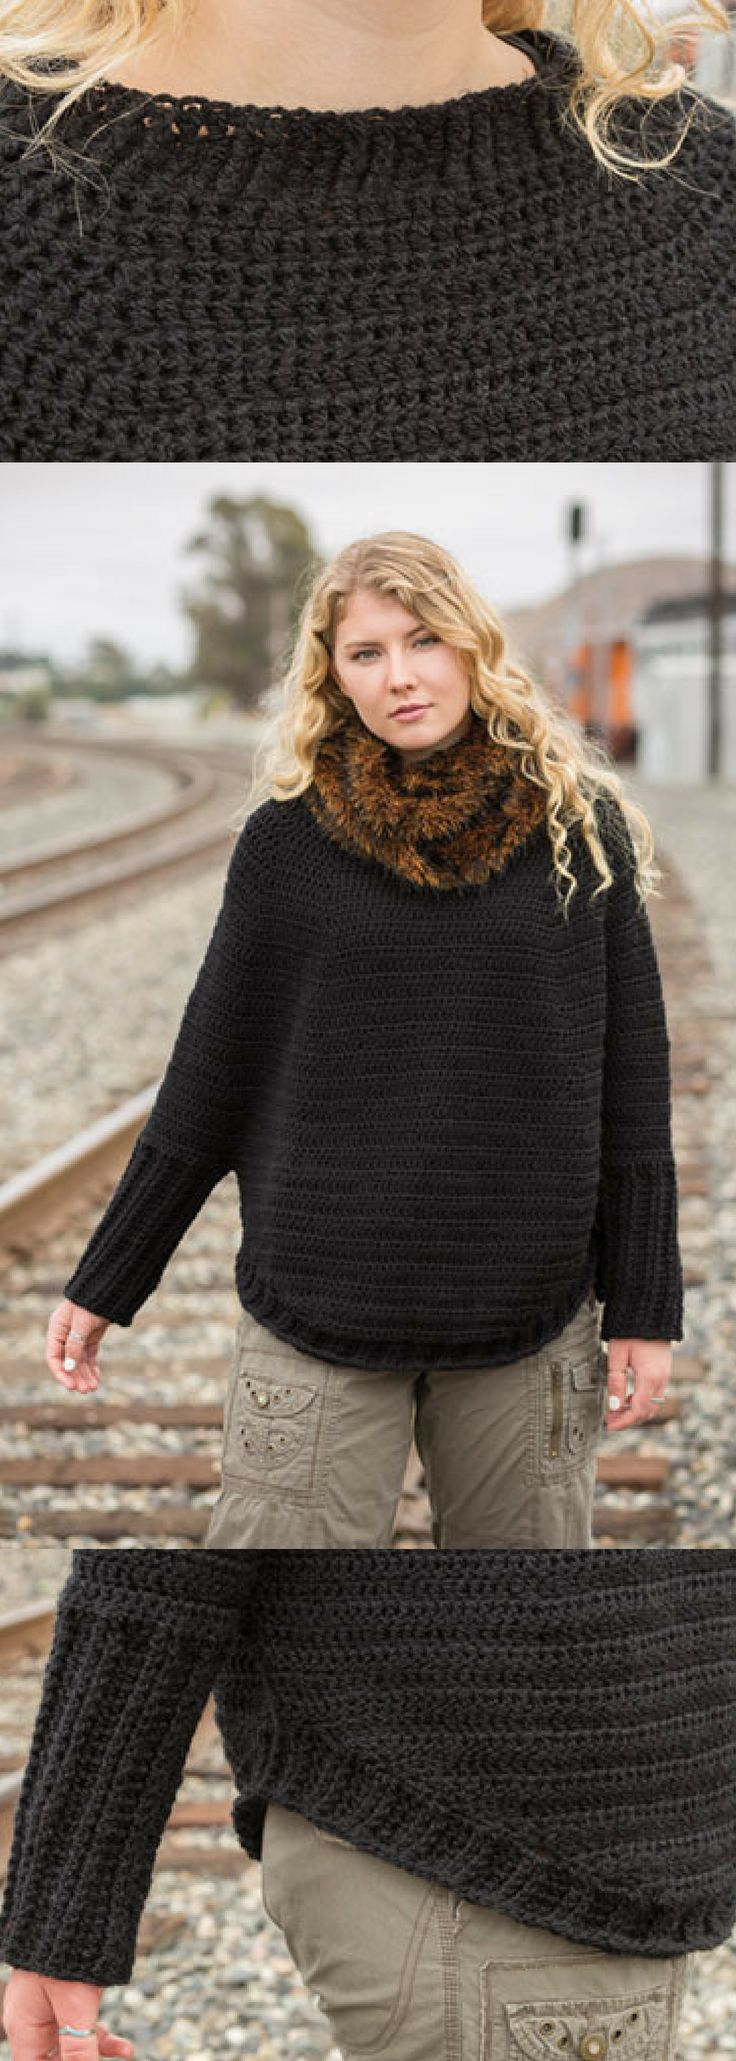 Take Me Places Sweater Crochet Pattern - Padrões - Projetos - Para Mulheres - ...